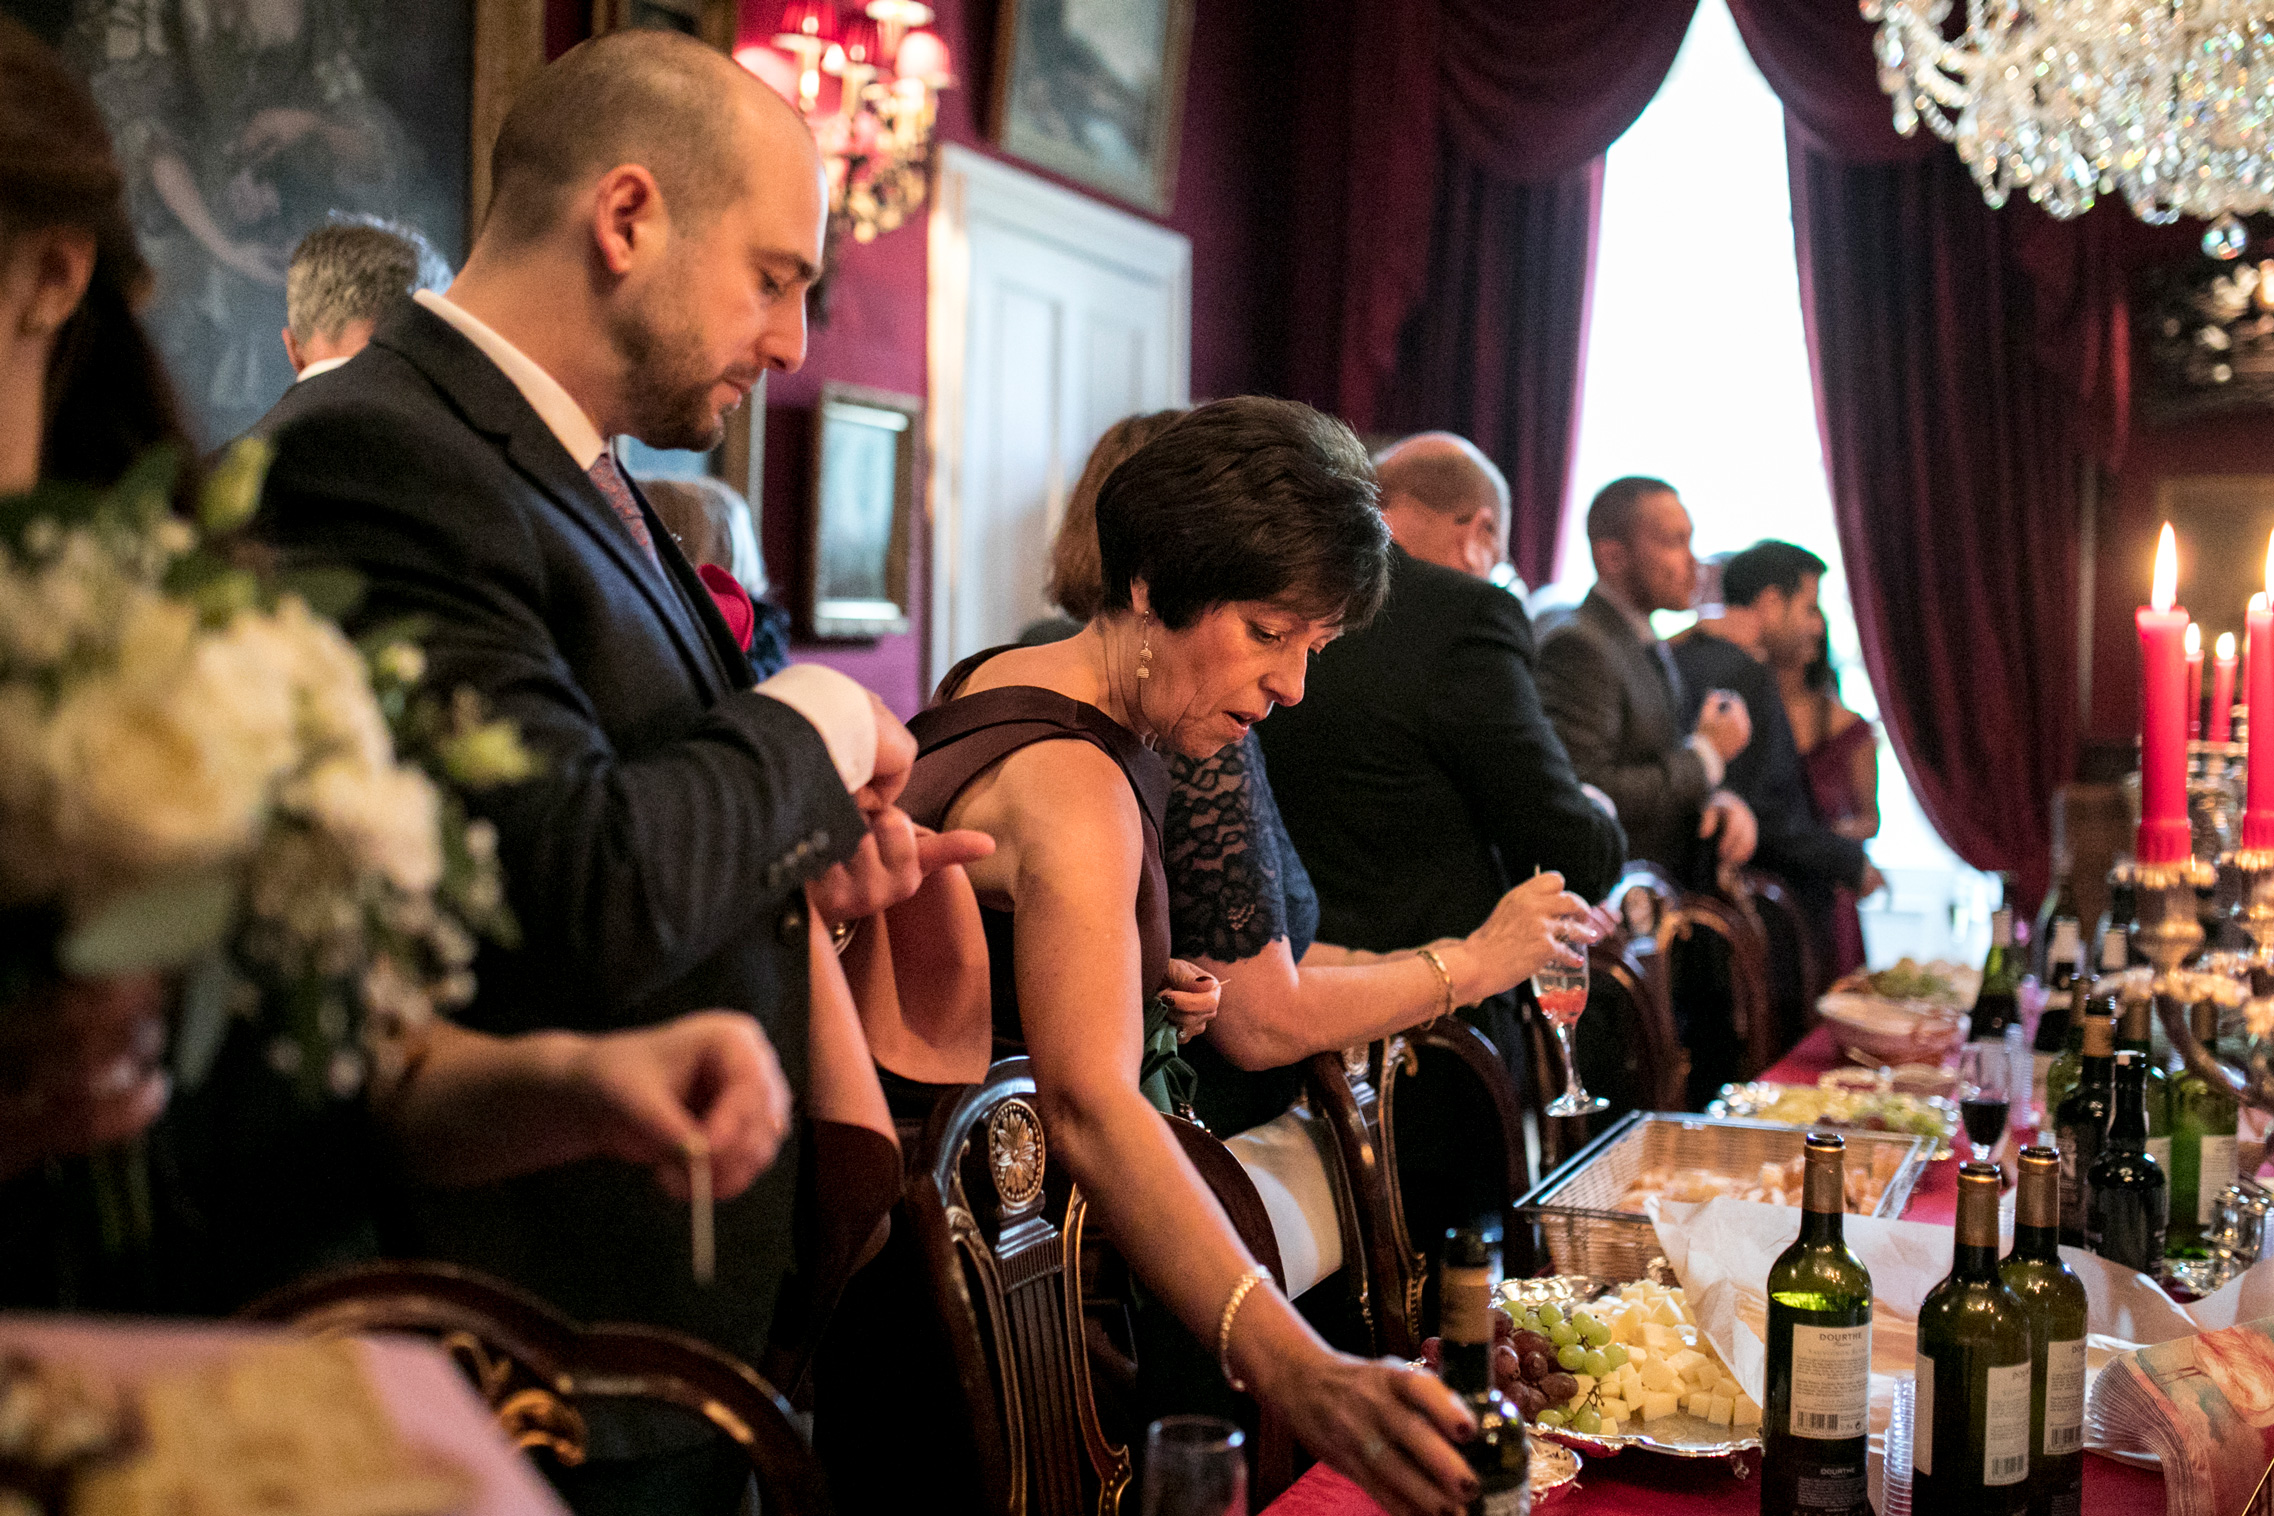 Wedding Guests, Cheese Reception, Wine Tasting,